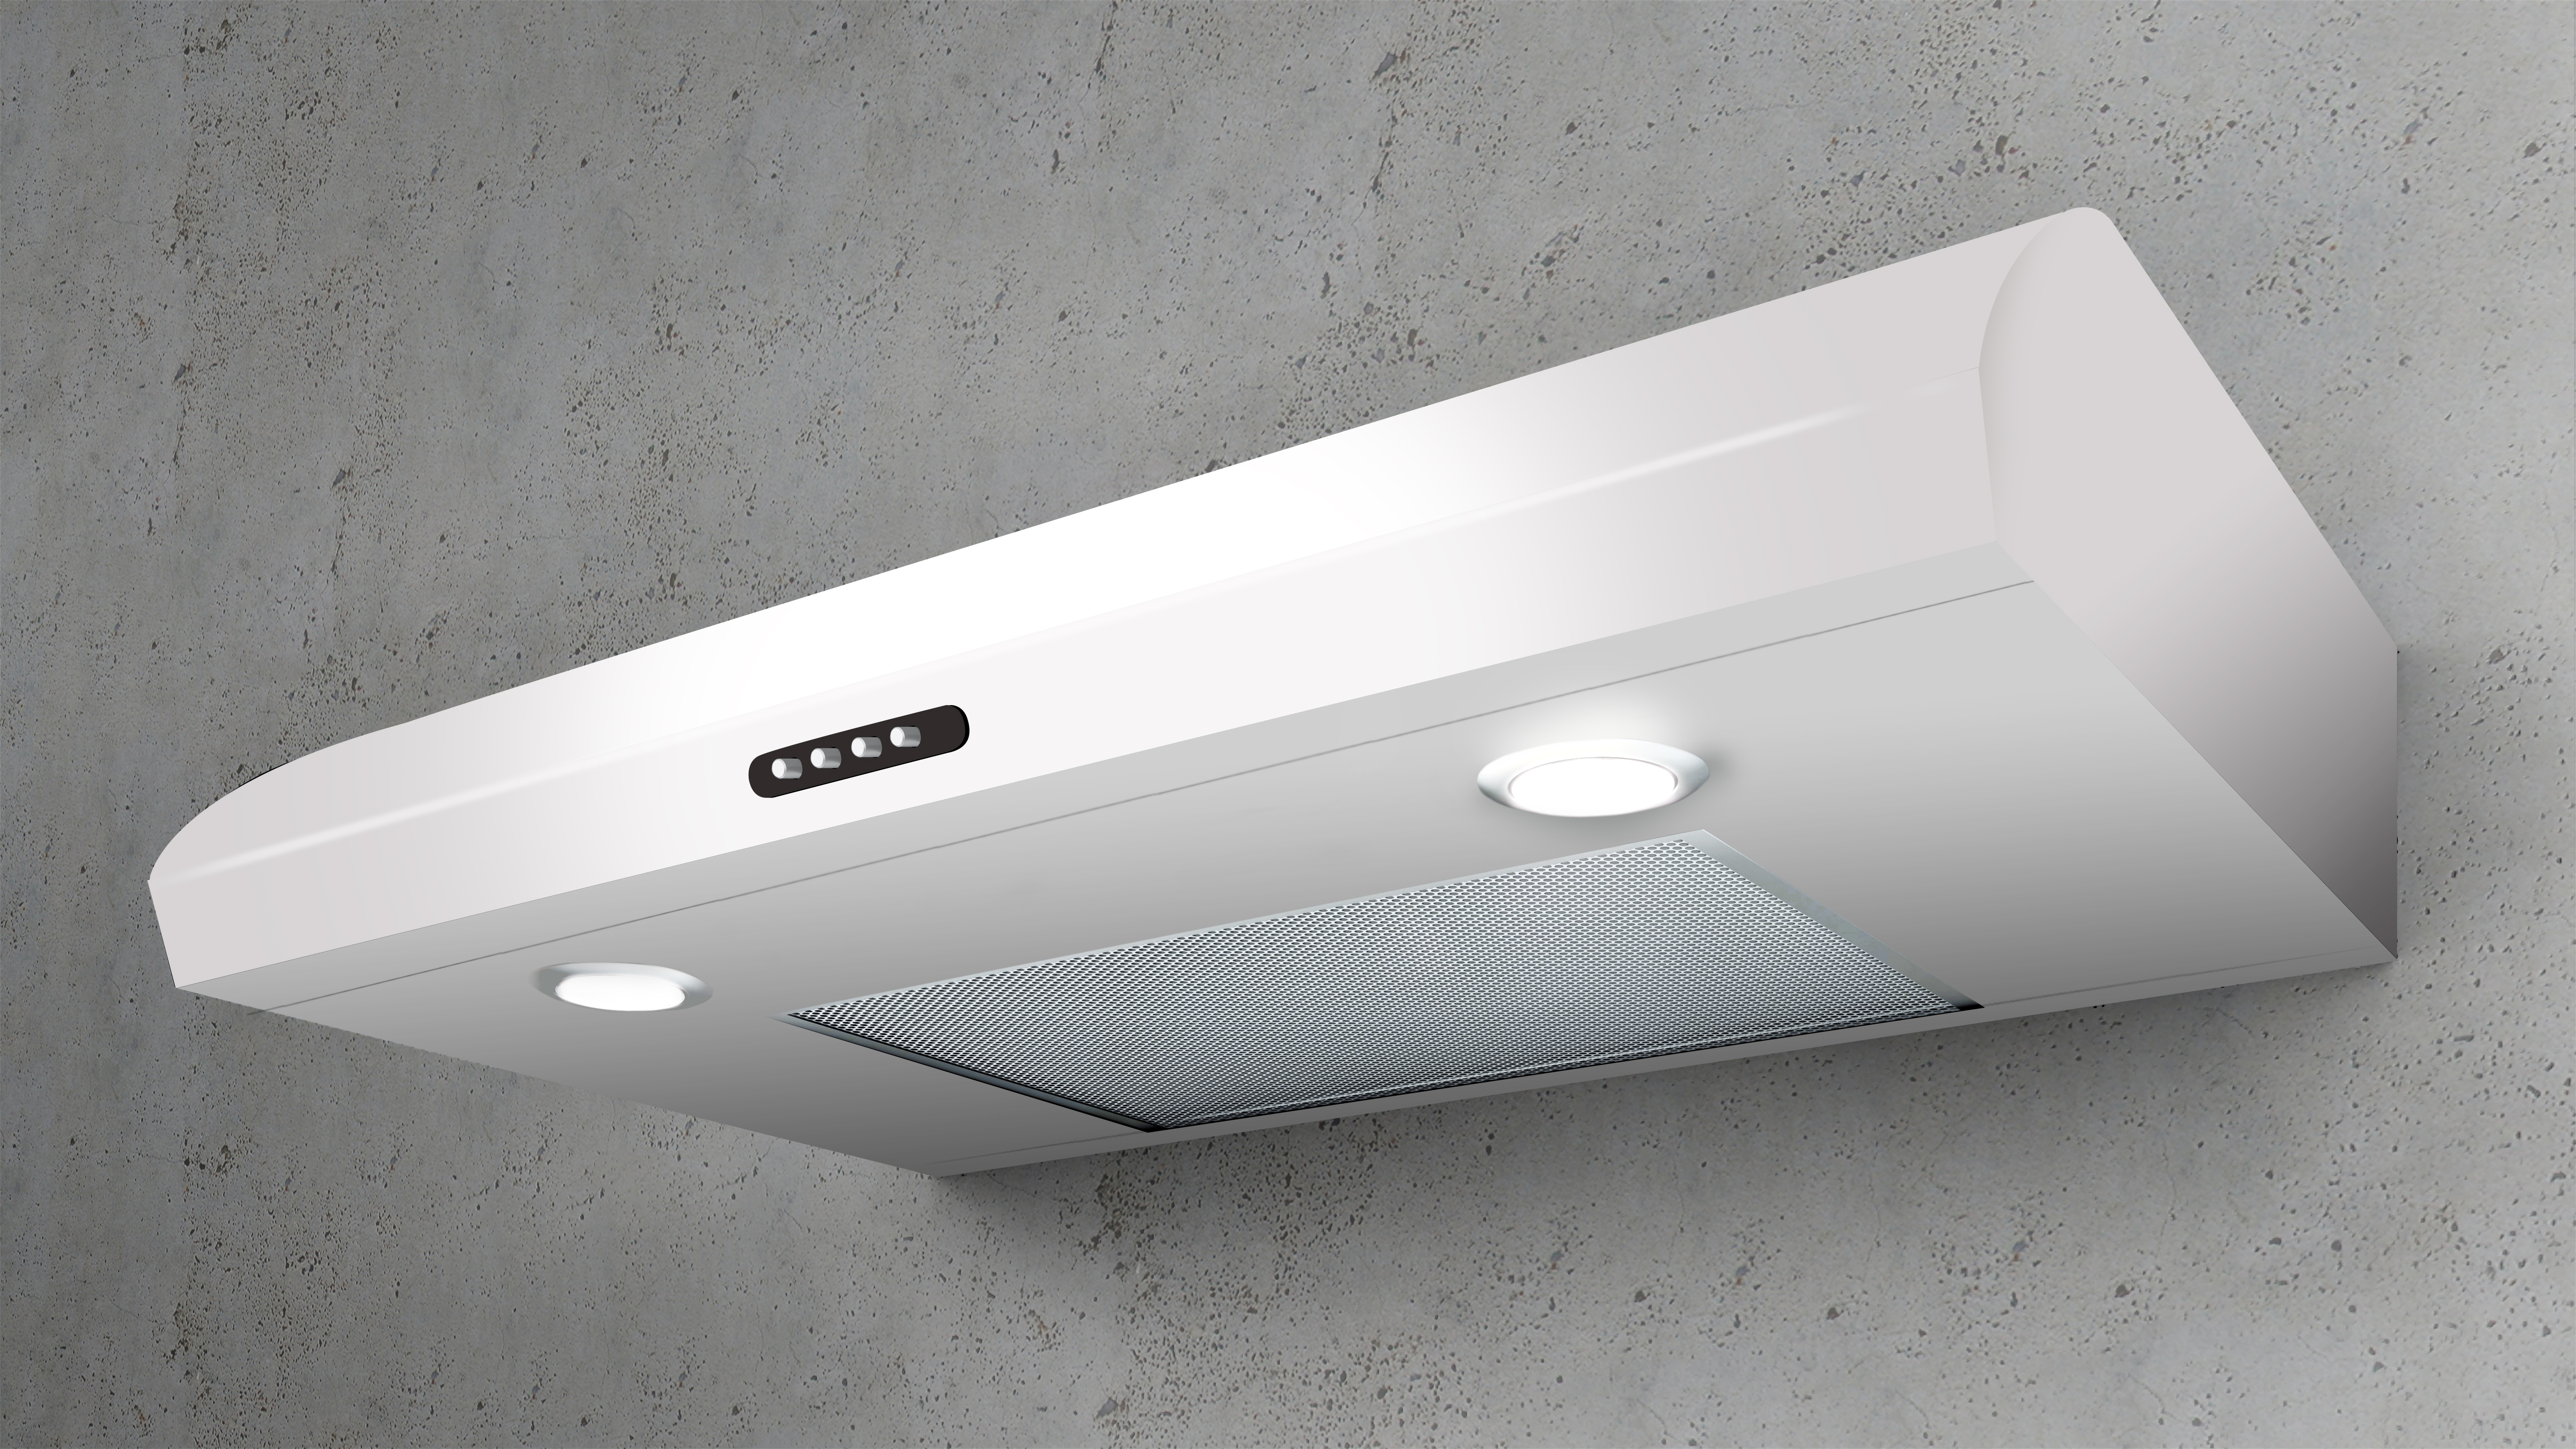 Elica Range hood 30 White ENM230WT in White color showcased by Corbeil Electro Store